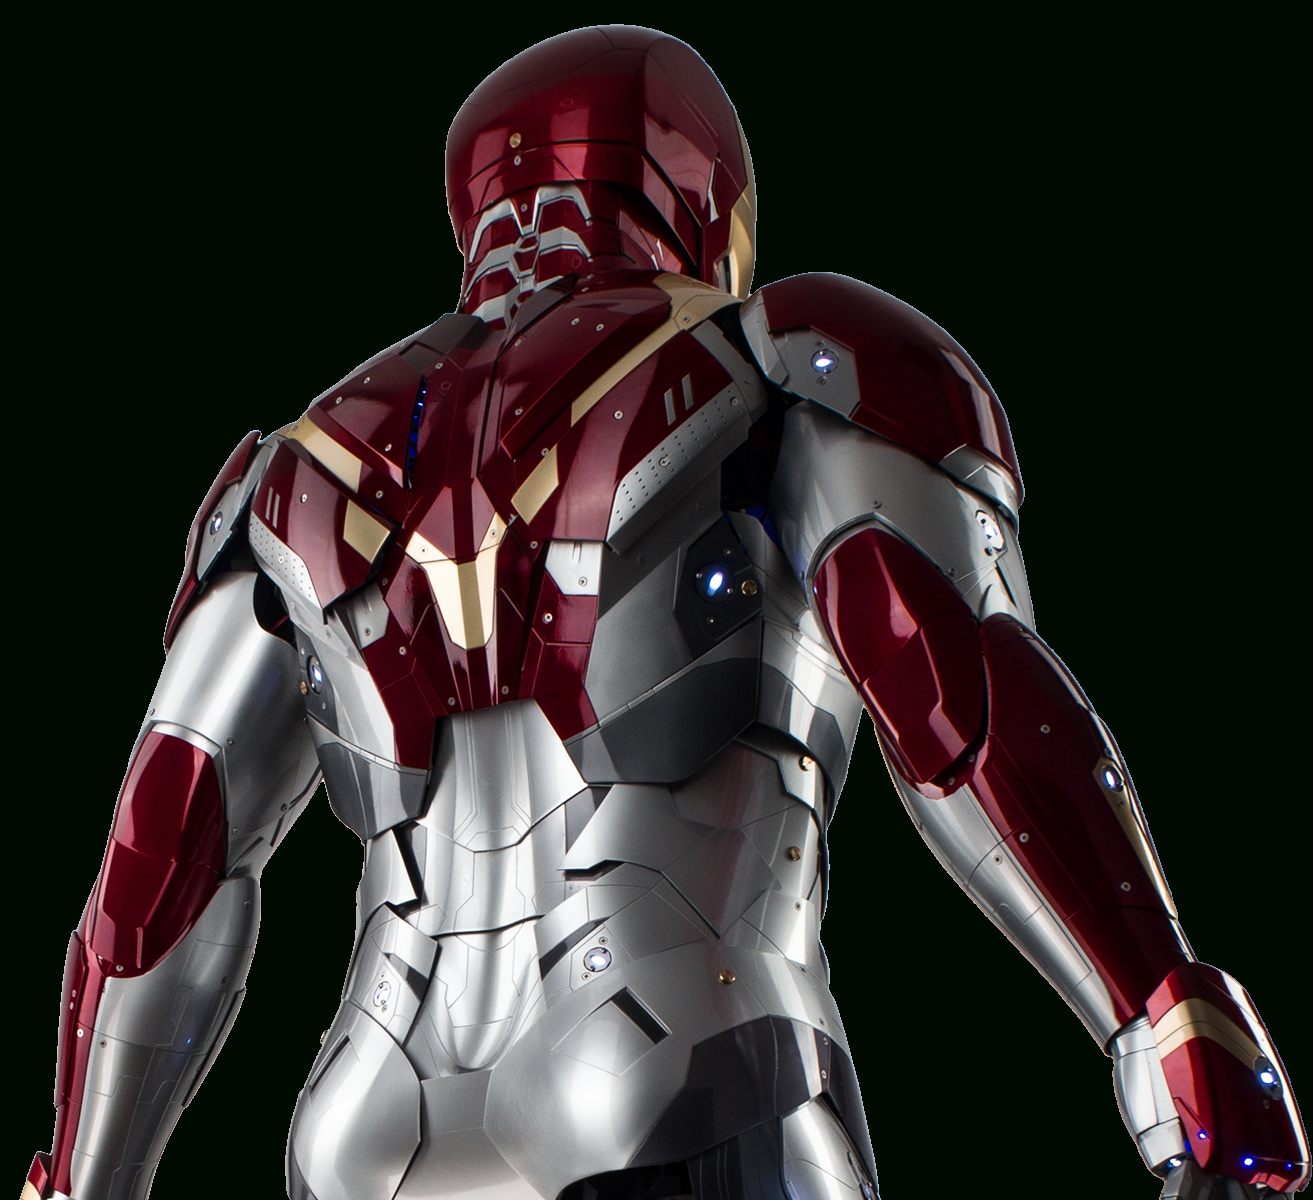 buy iron man suit, halo master chief armor, batman costume, star